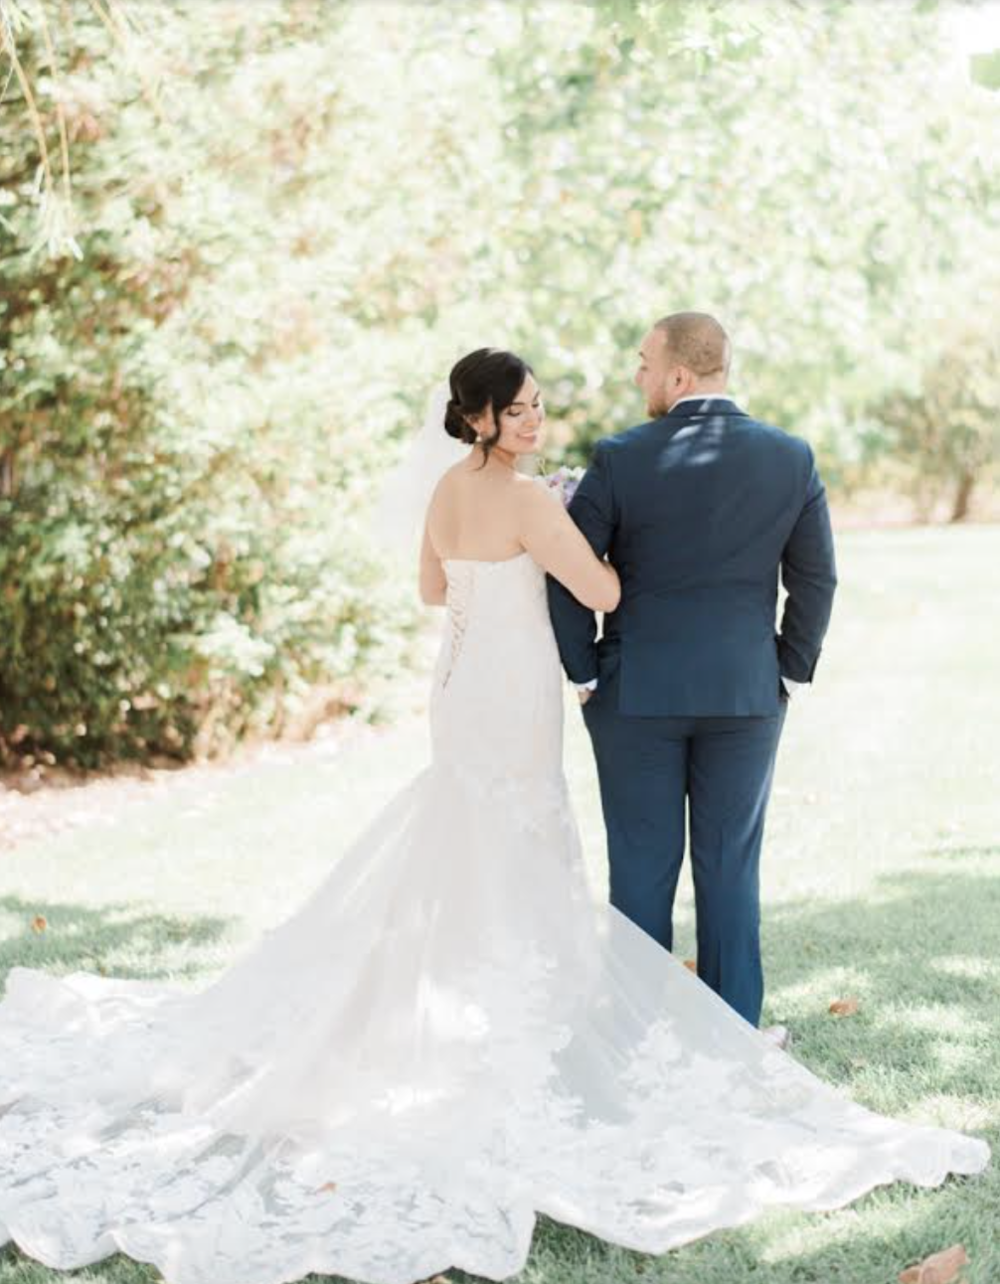 Real Bride: Juana (Dress: Juana, mermaid, strapless, outdoor wedding)